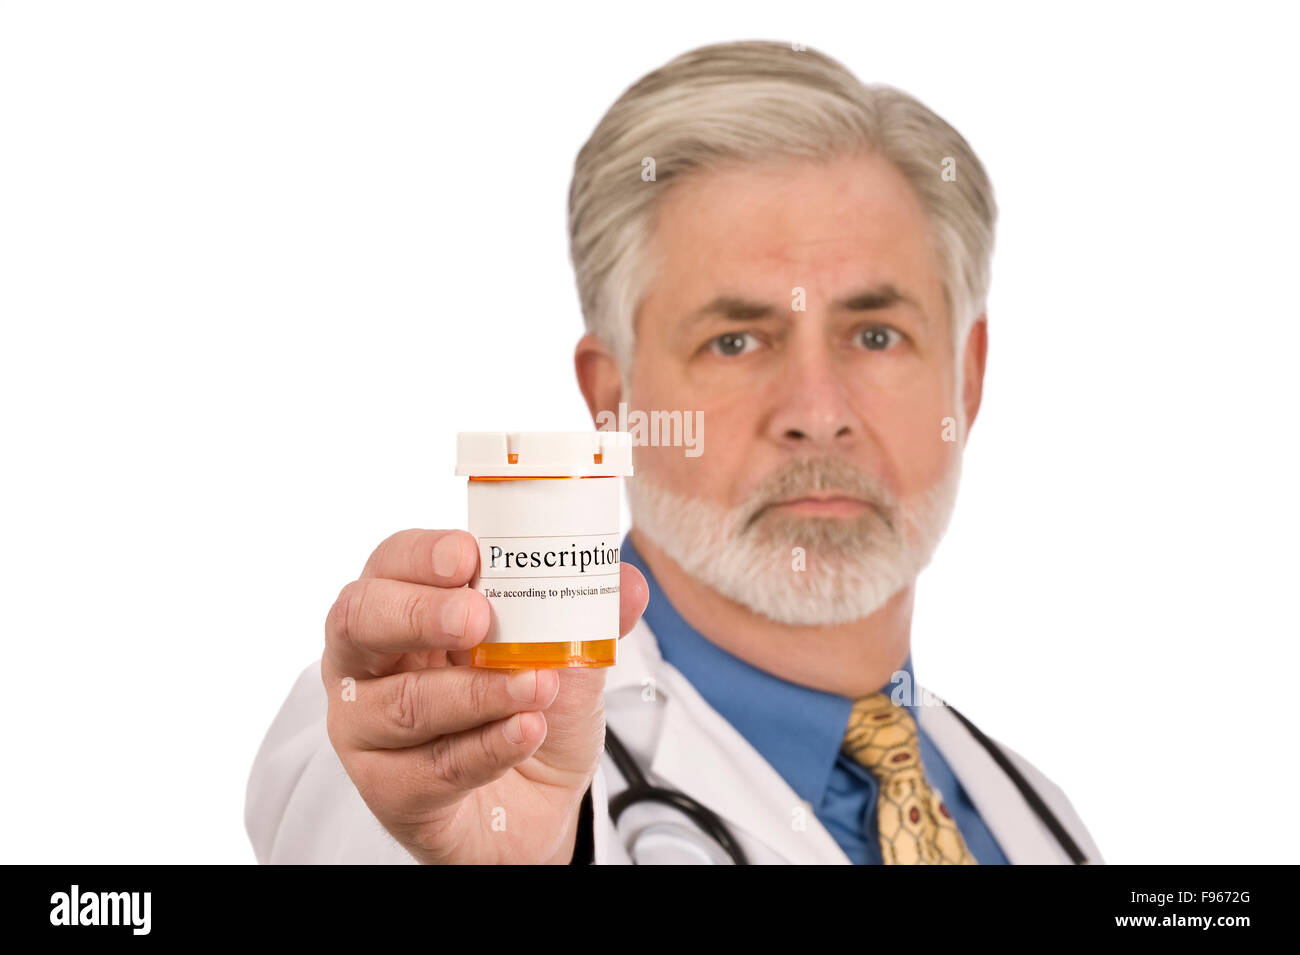 Male doctor holds out a prescription medication bottle - Stock Image